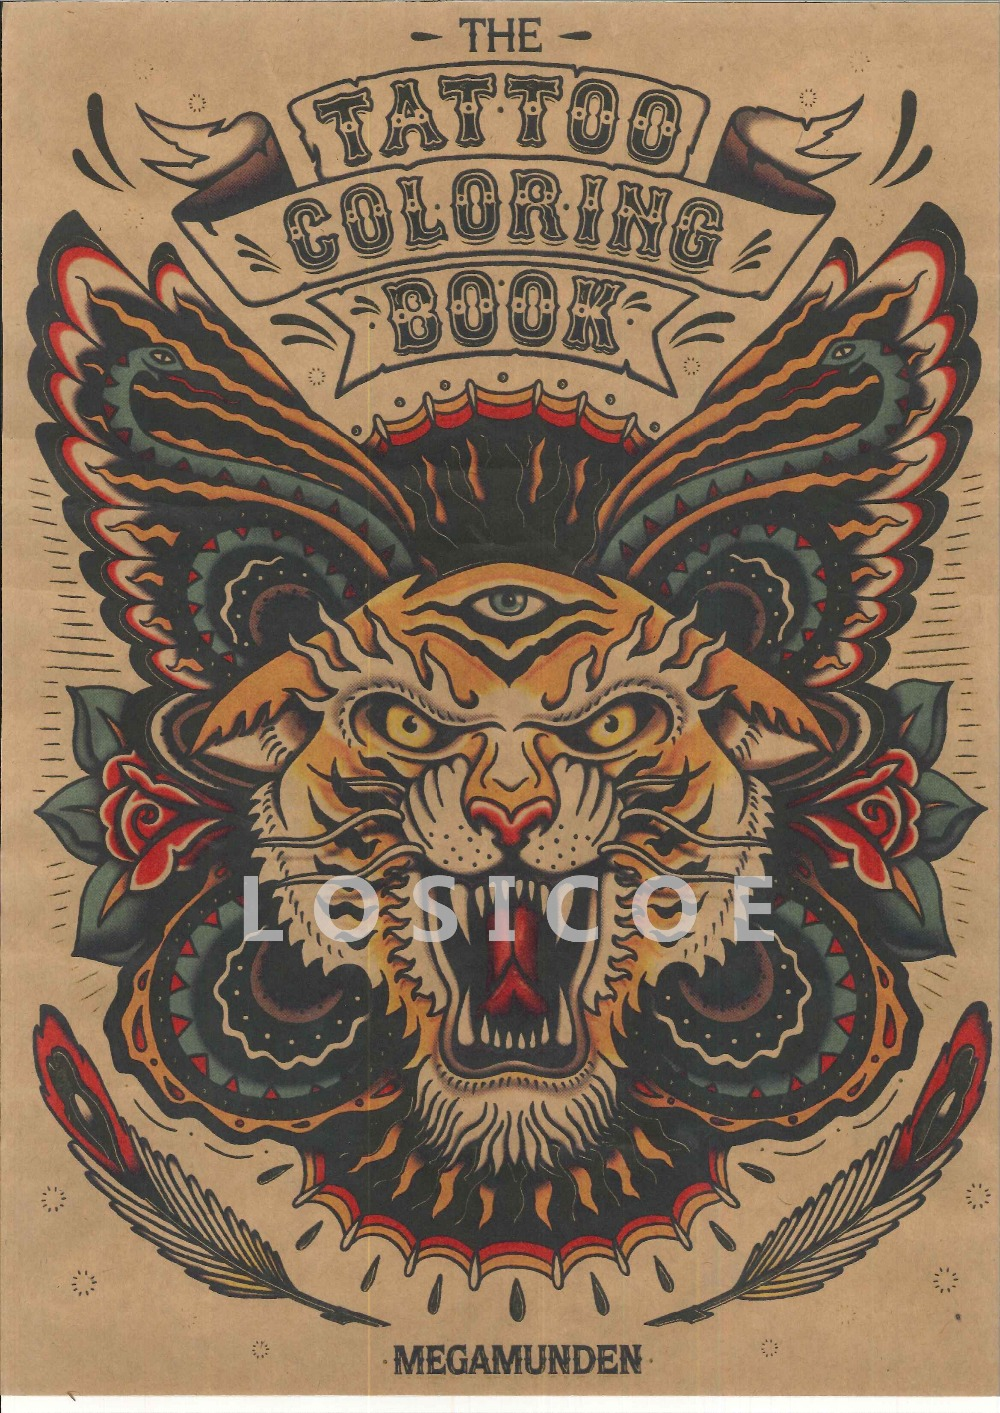 The tattoo coloring book megamunden - Tattoo Coloring Book